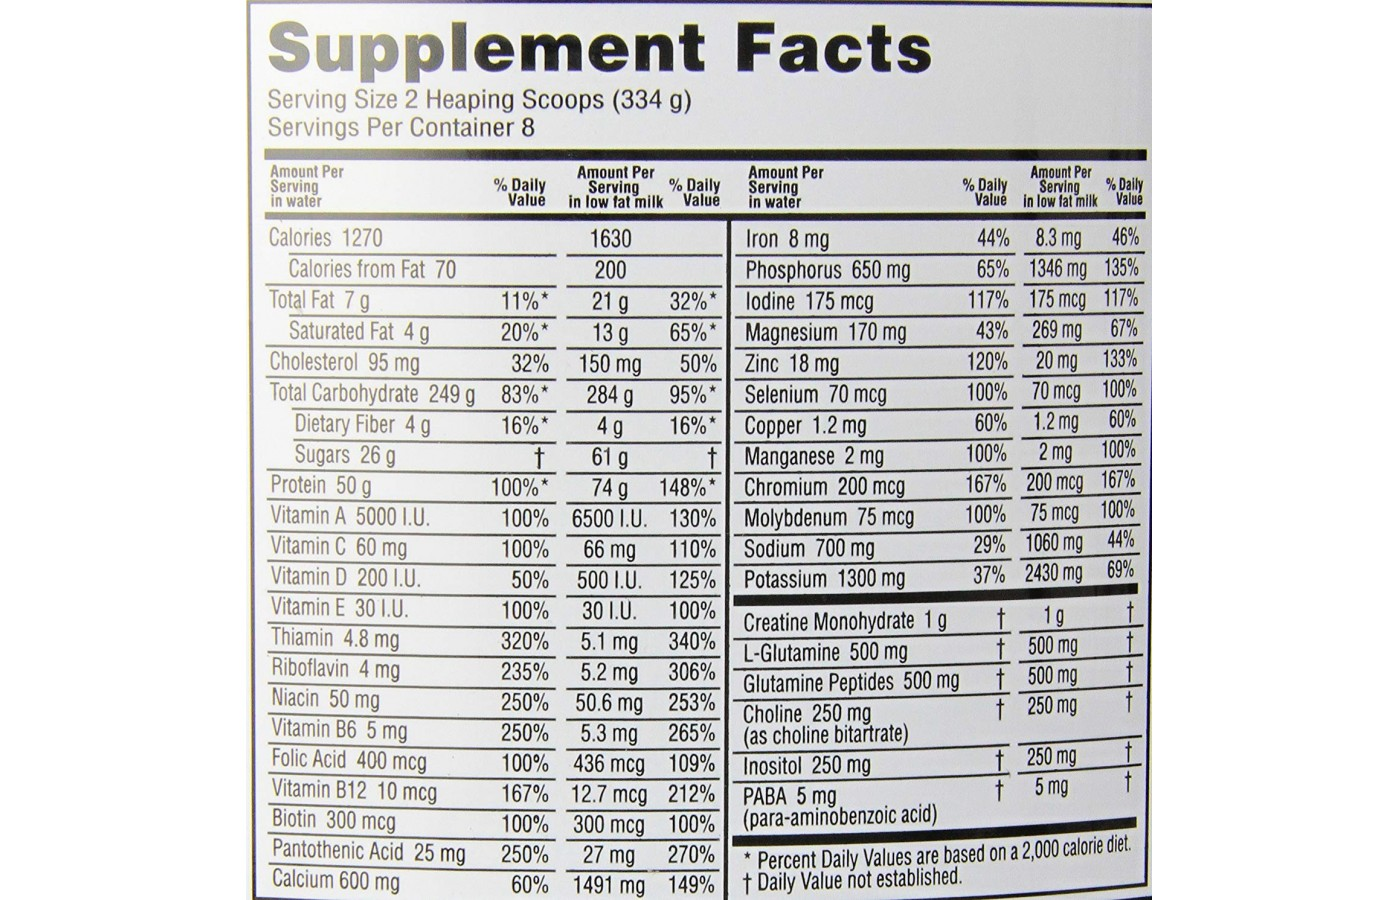 ON supplement facts